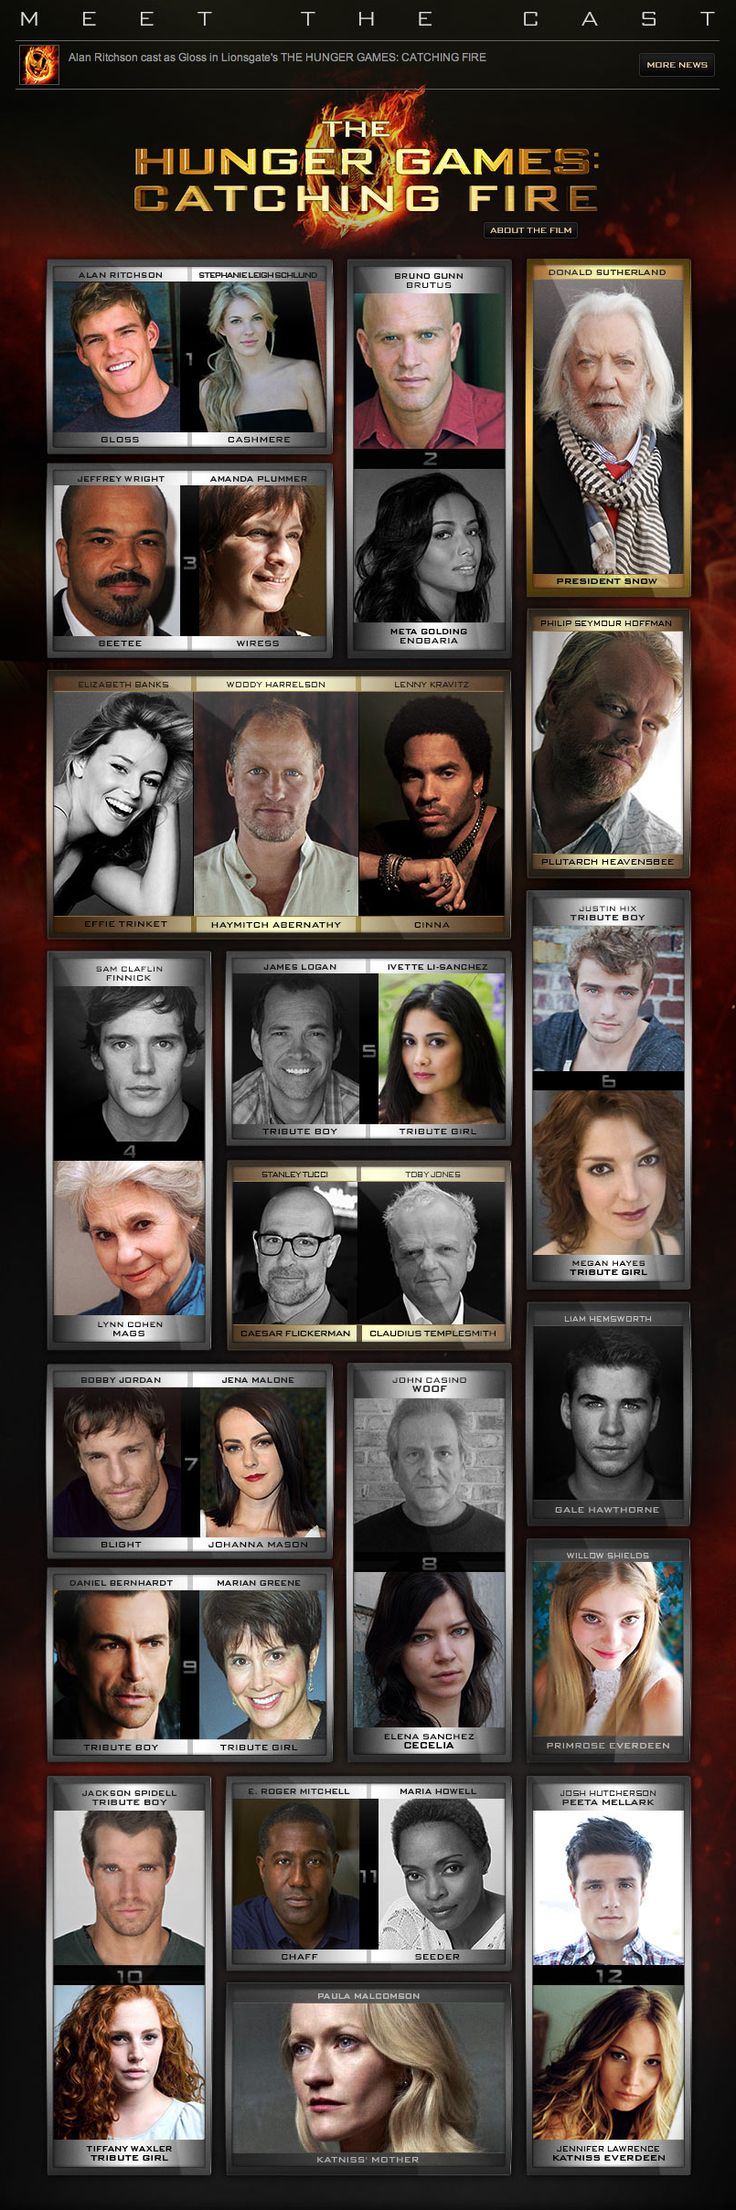 Hunger+Games+Characters | ... out the full the hunger games catching fire cast in the image below